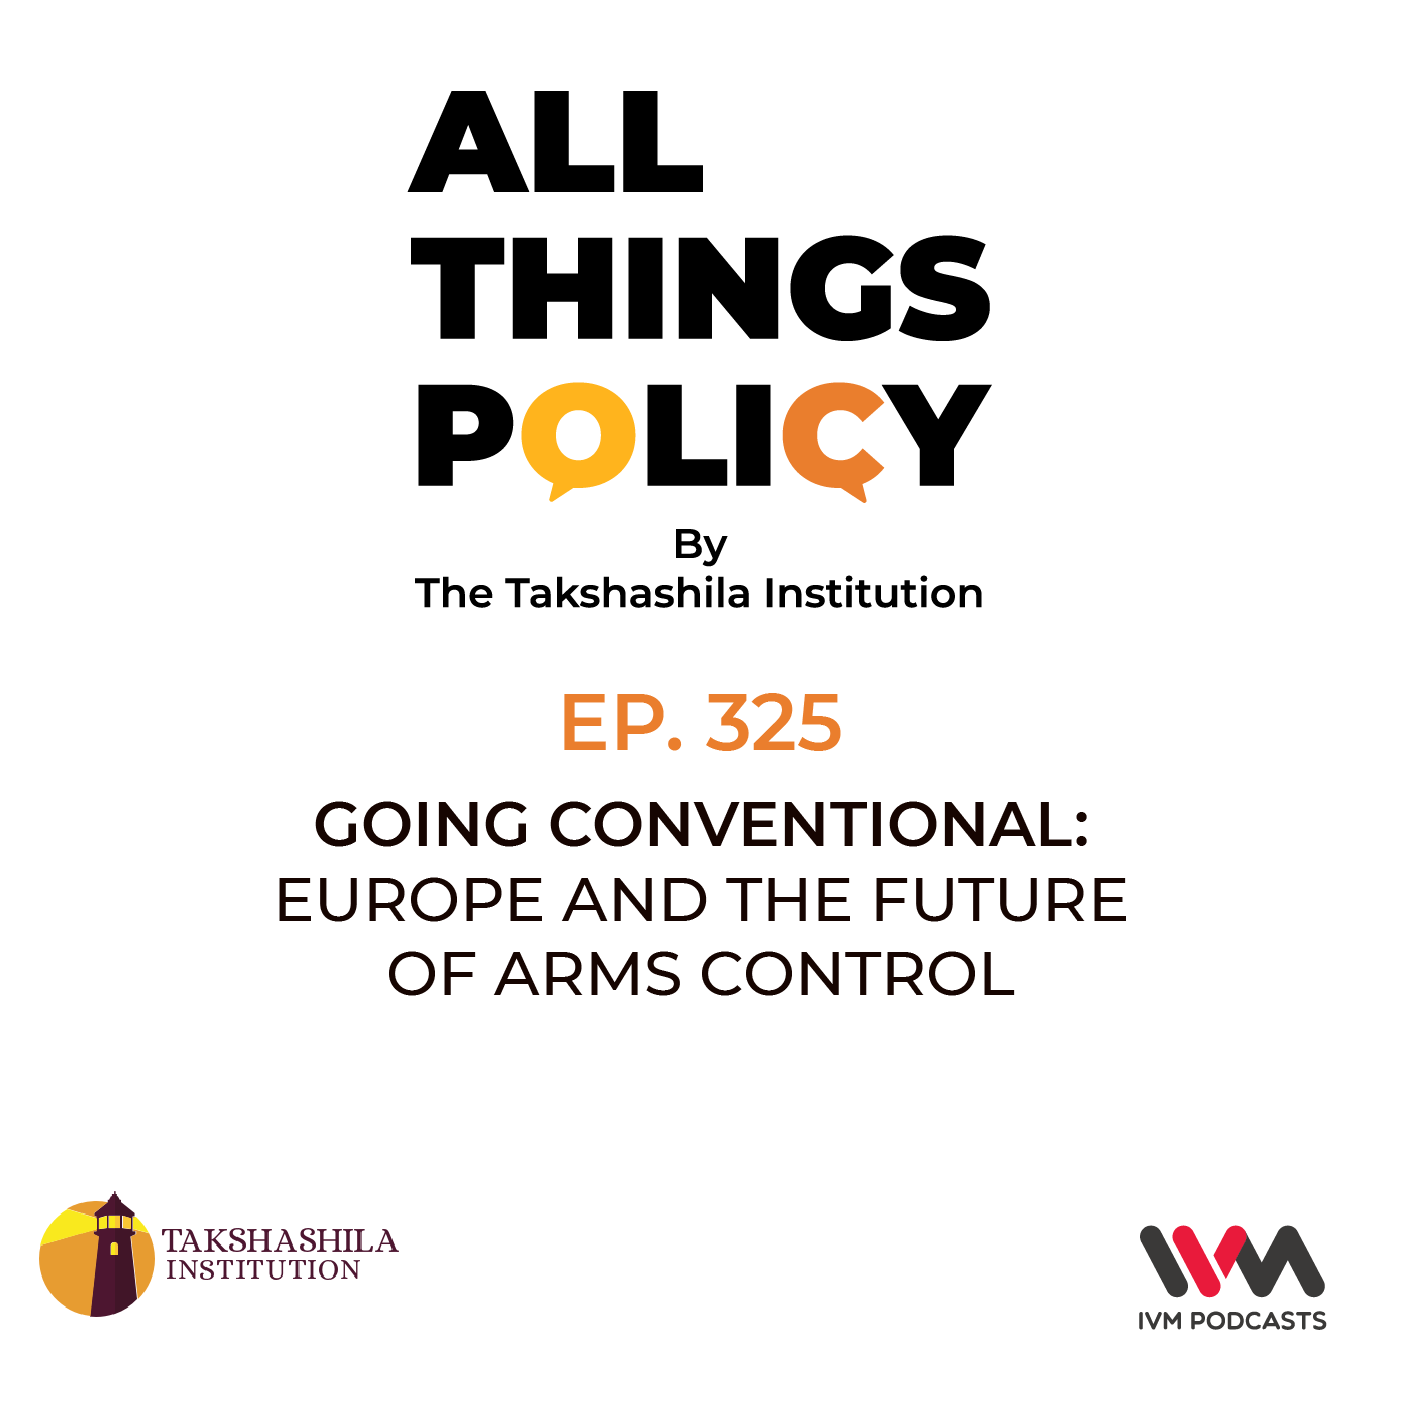 Ep. 325: Going Conventional: Europe and the Future of Arms Control